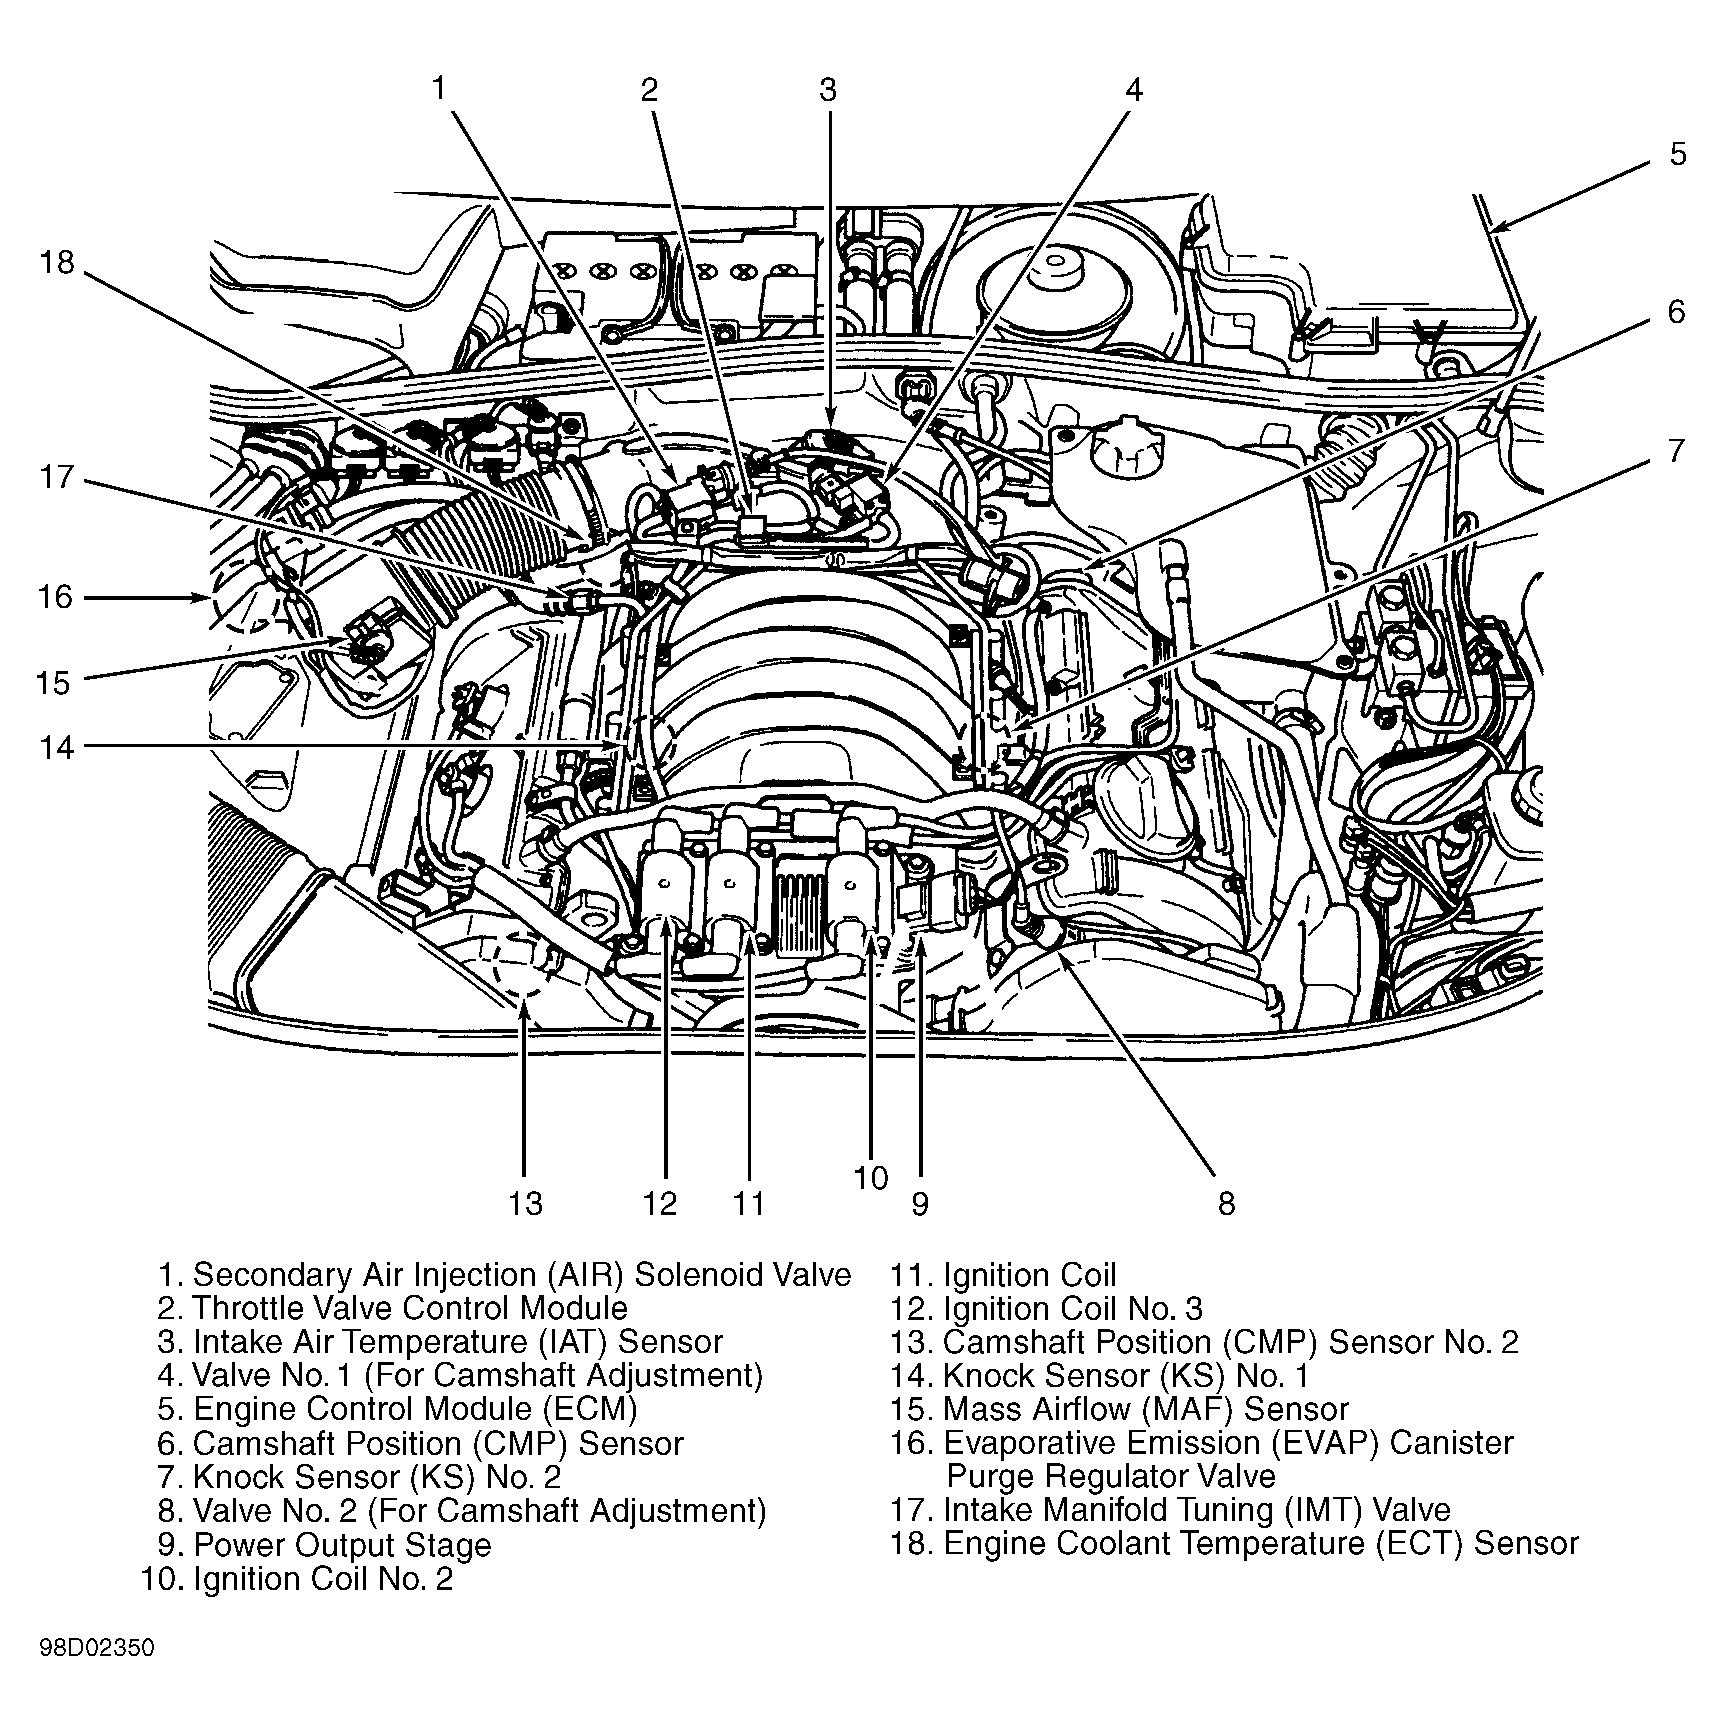 4 3 Liter V6 Vortec Engine Diagram V6 Engine Diagram 3 8 1984 Diagram Data Schema Exp Of 4 3 Liter V6 Vortec Engine Diagram